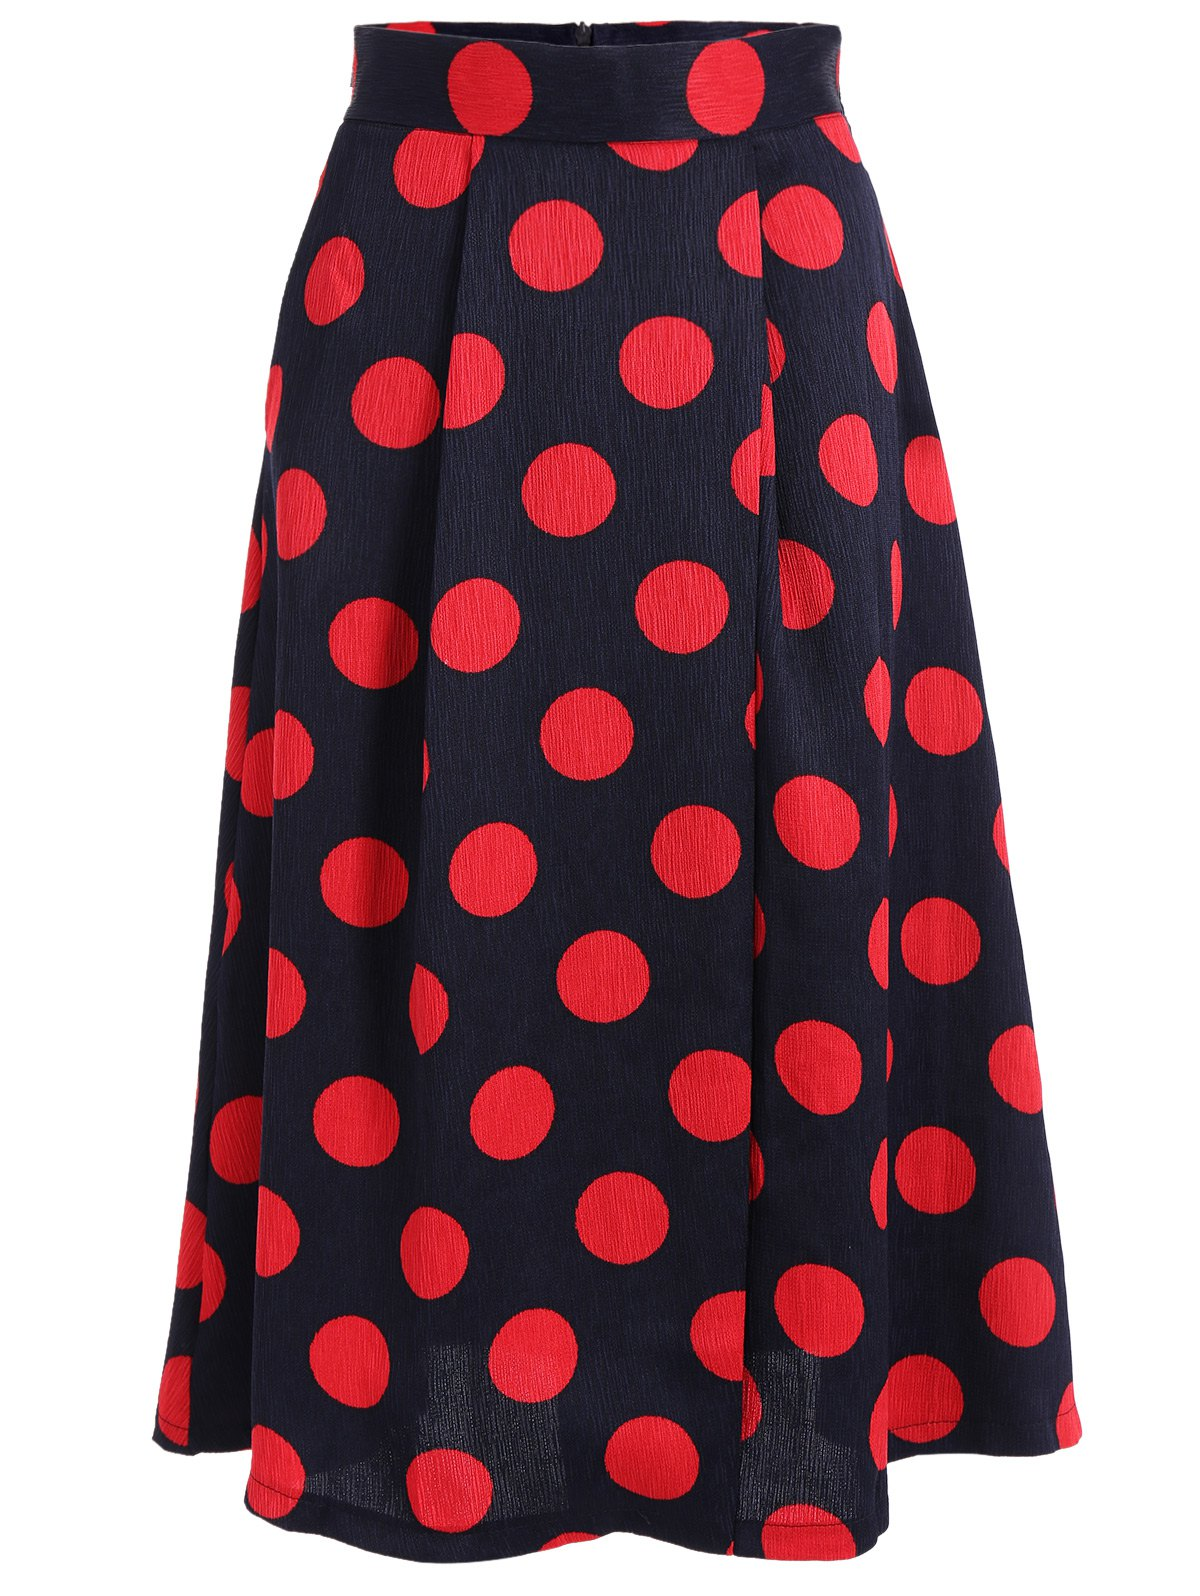 High Waist Polka Dot A Line Skirt